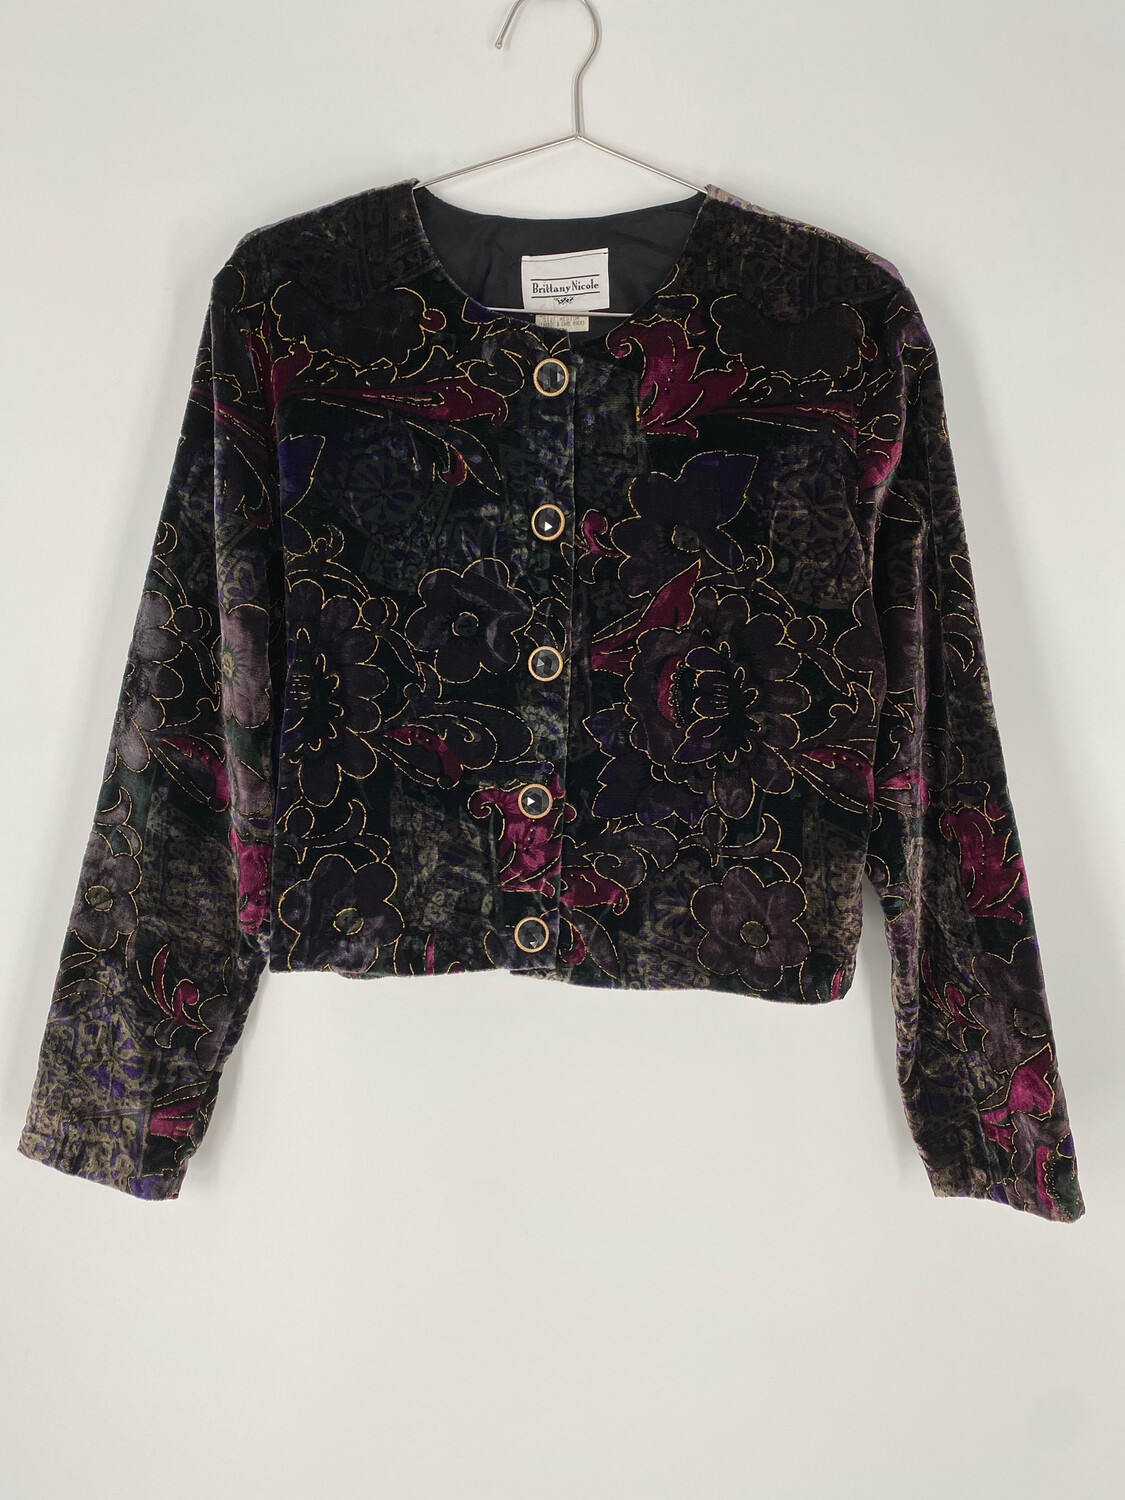 Brittany Nicole Velvet Floral Jewel Button Up Blouse Size M